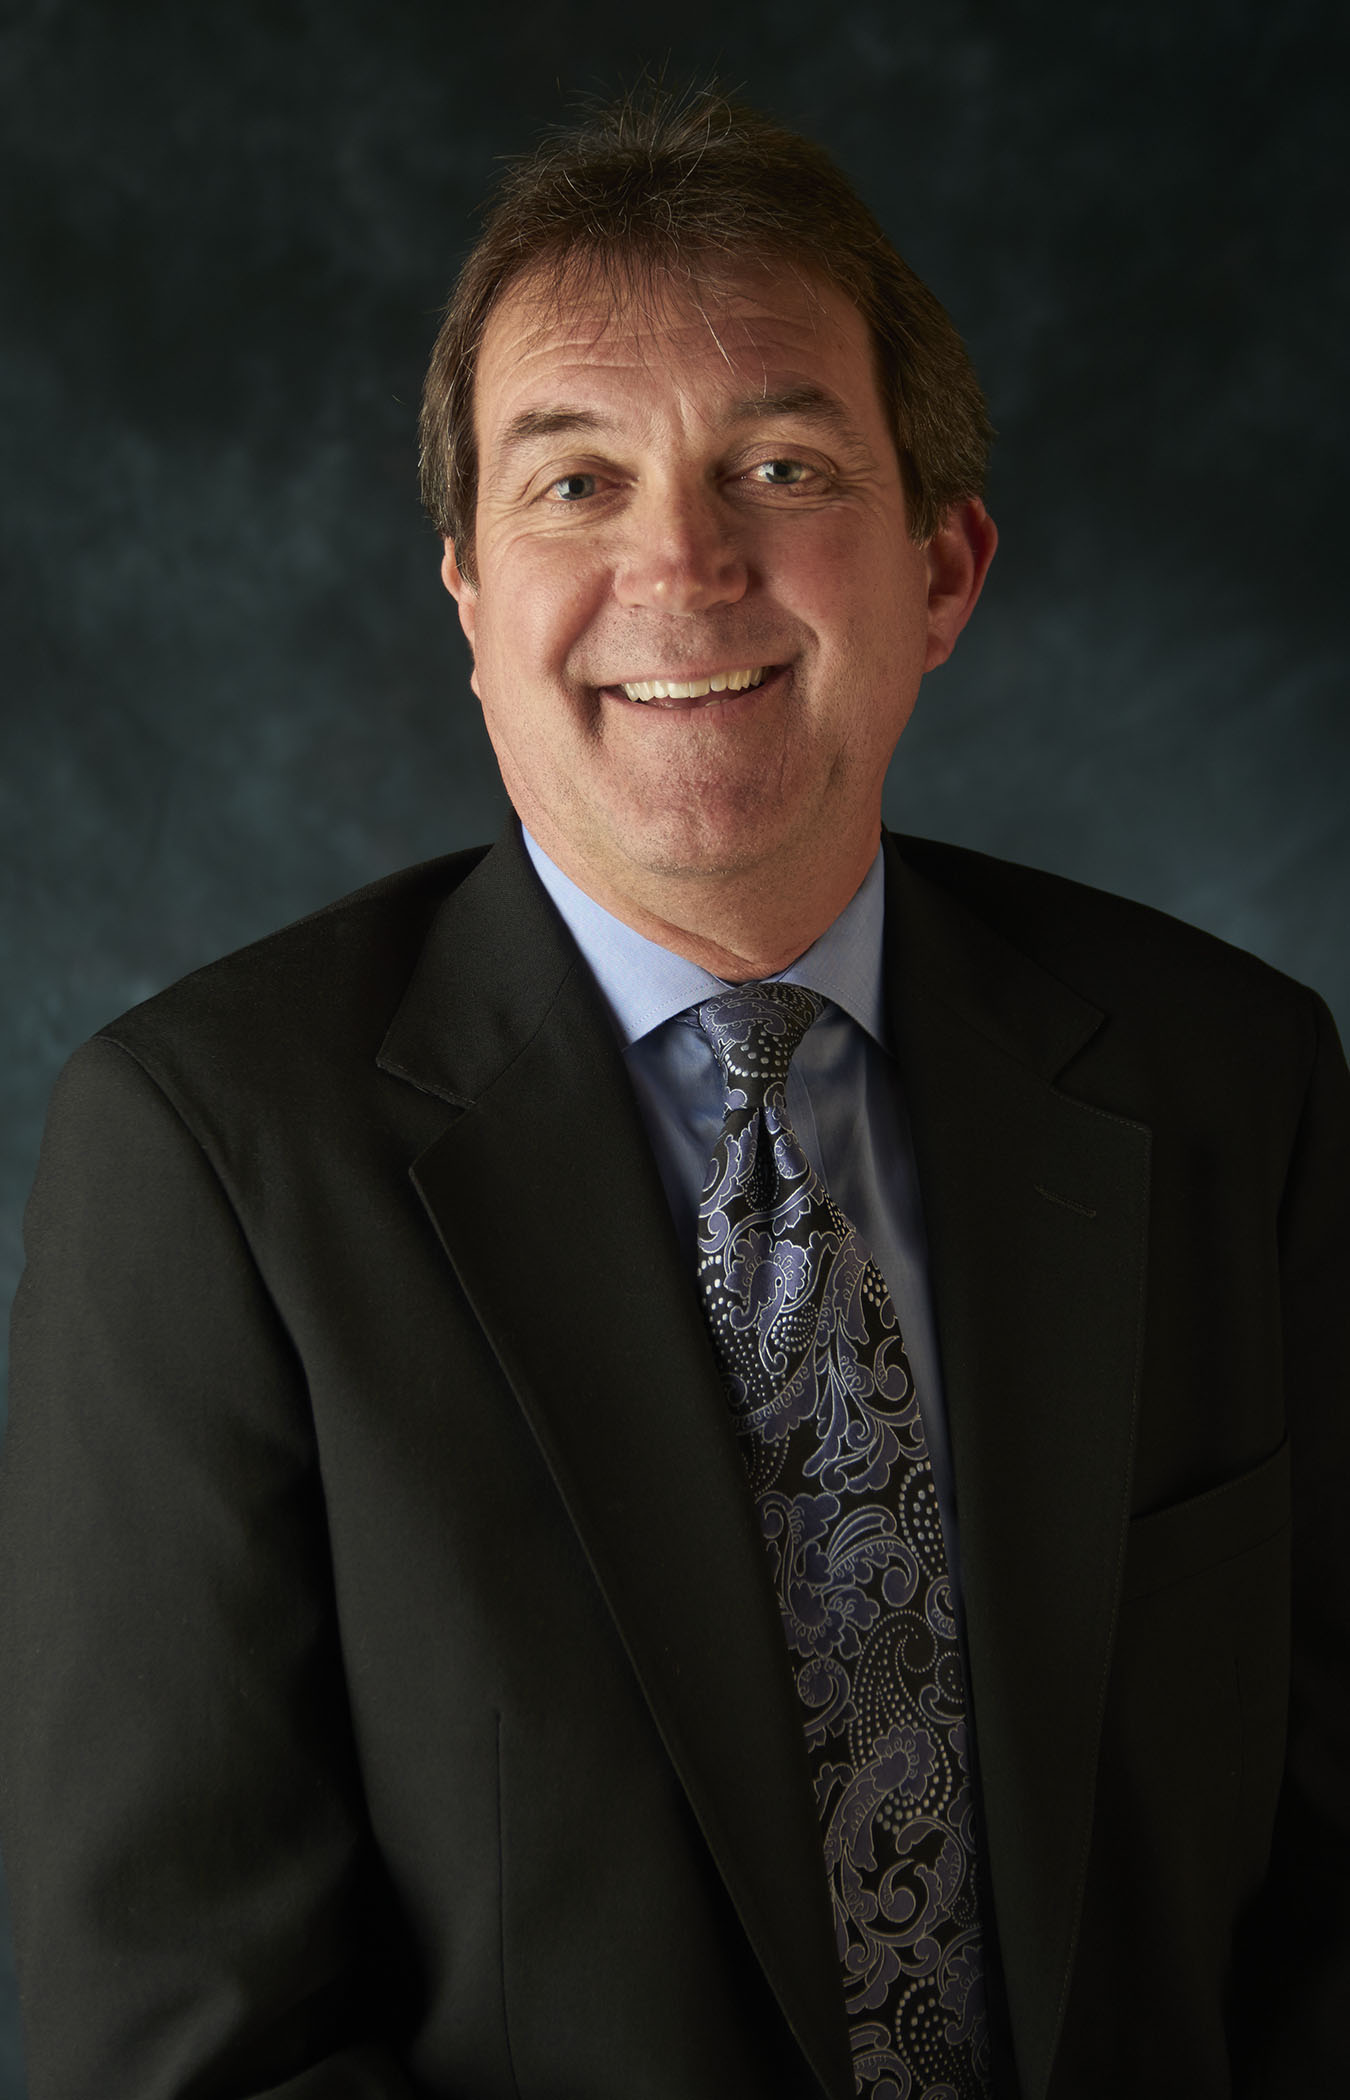 Keith Wilson, Business Development Specialist, Henry Schein Dental